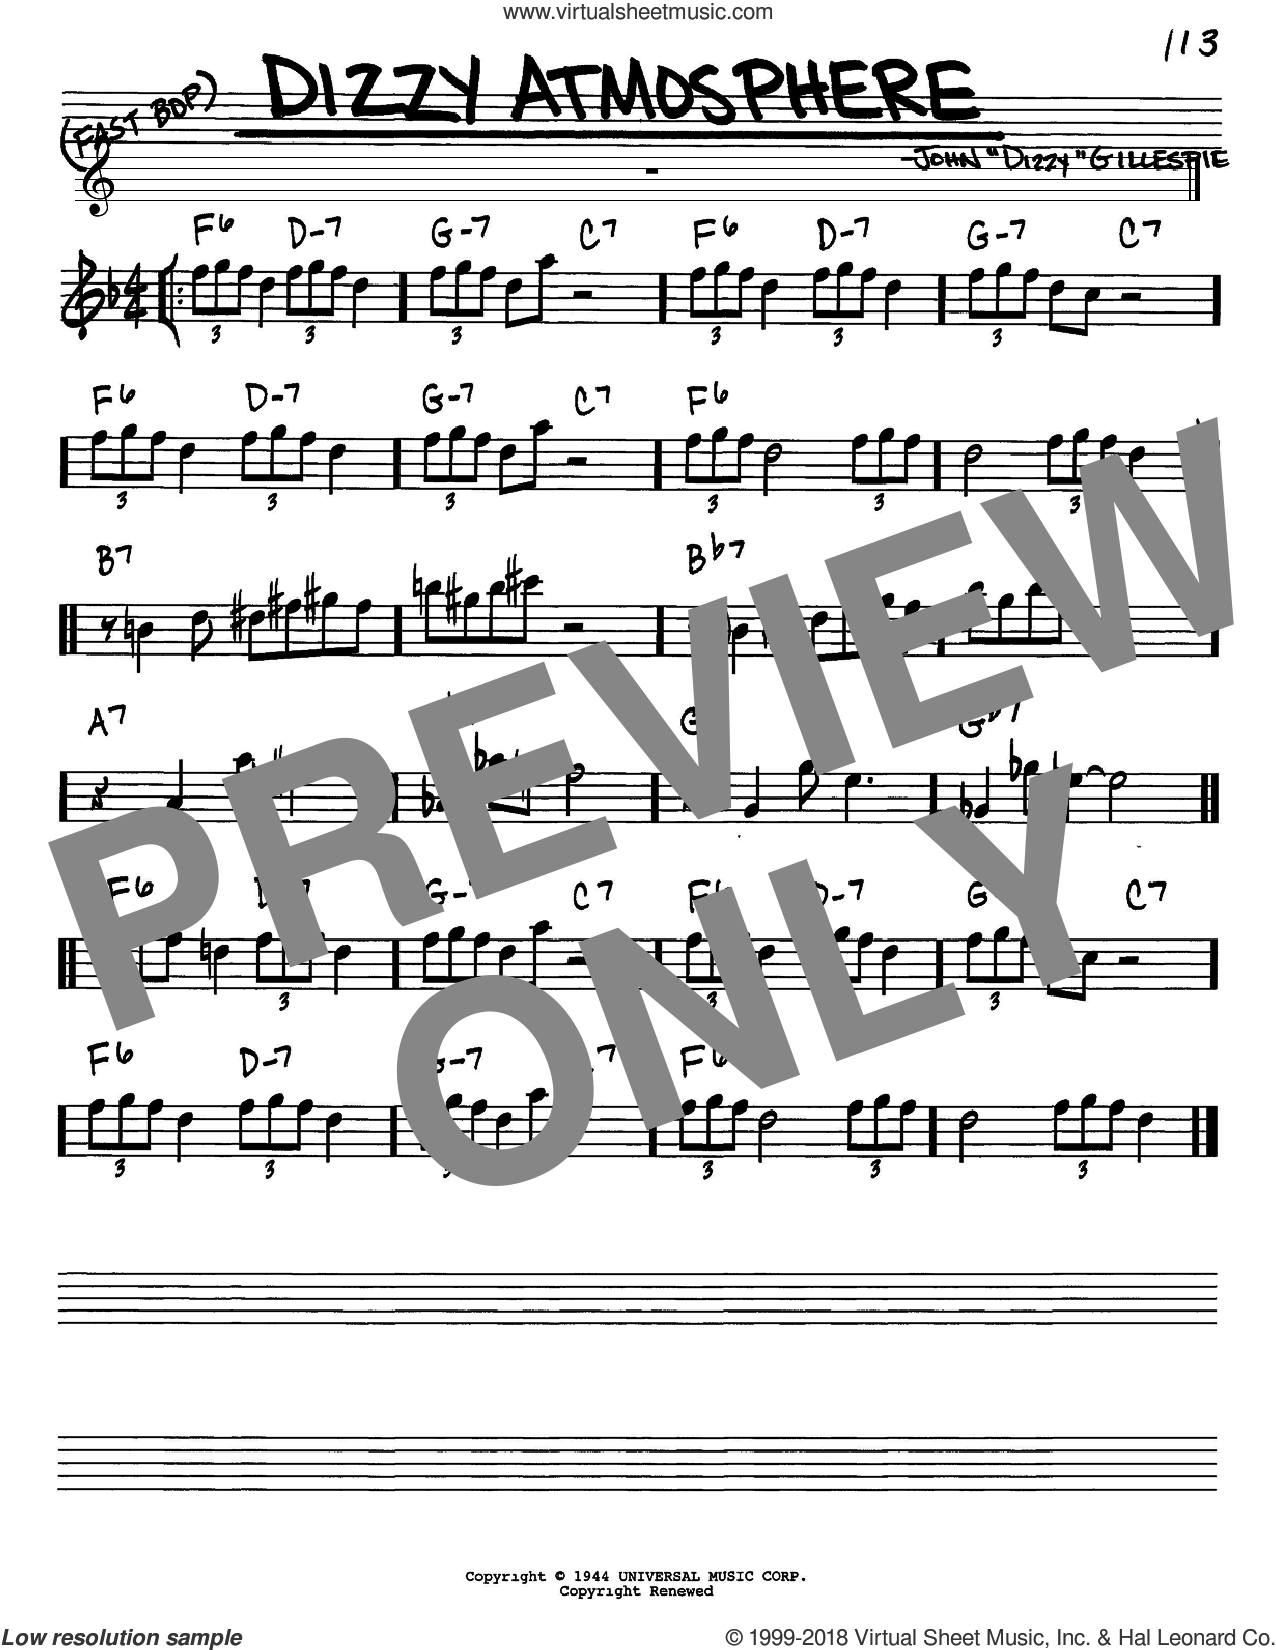 Dizzy Atmosphere sheet music for voice and other instruments (Eb) by Dizzy Gillespie